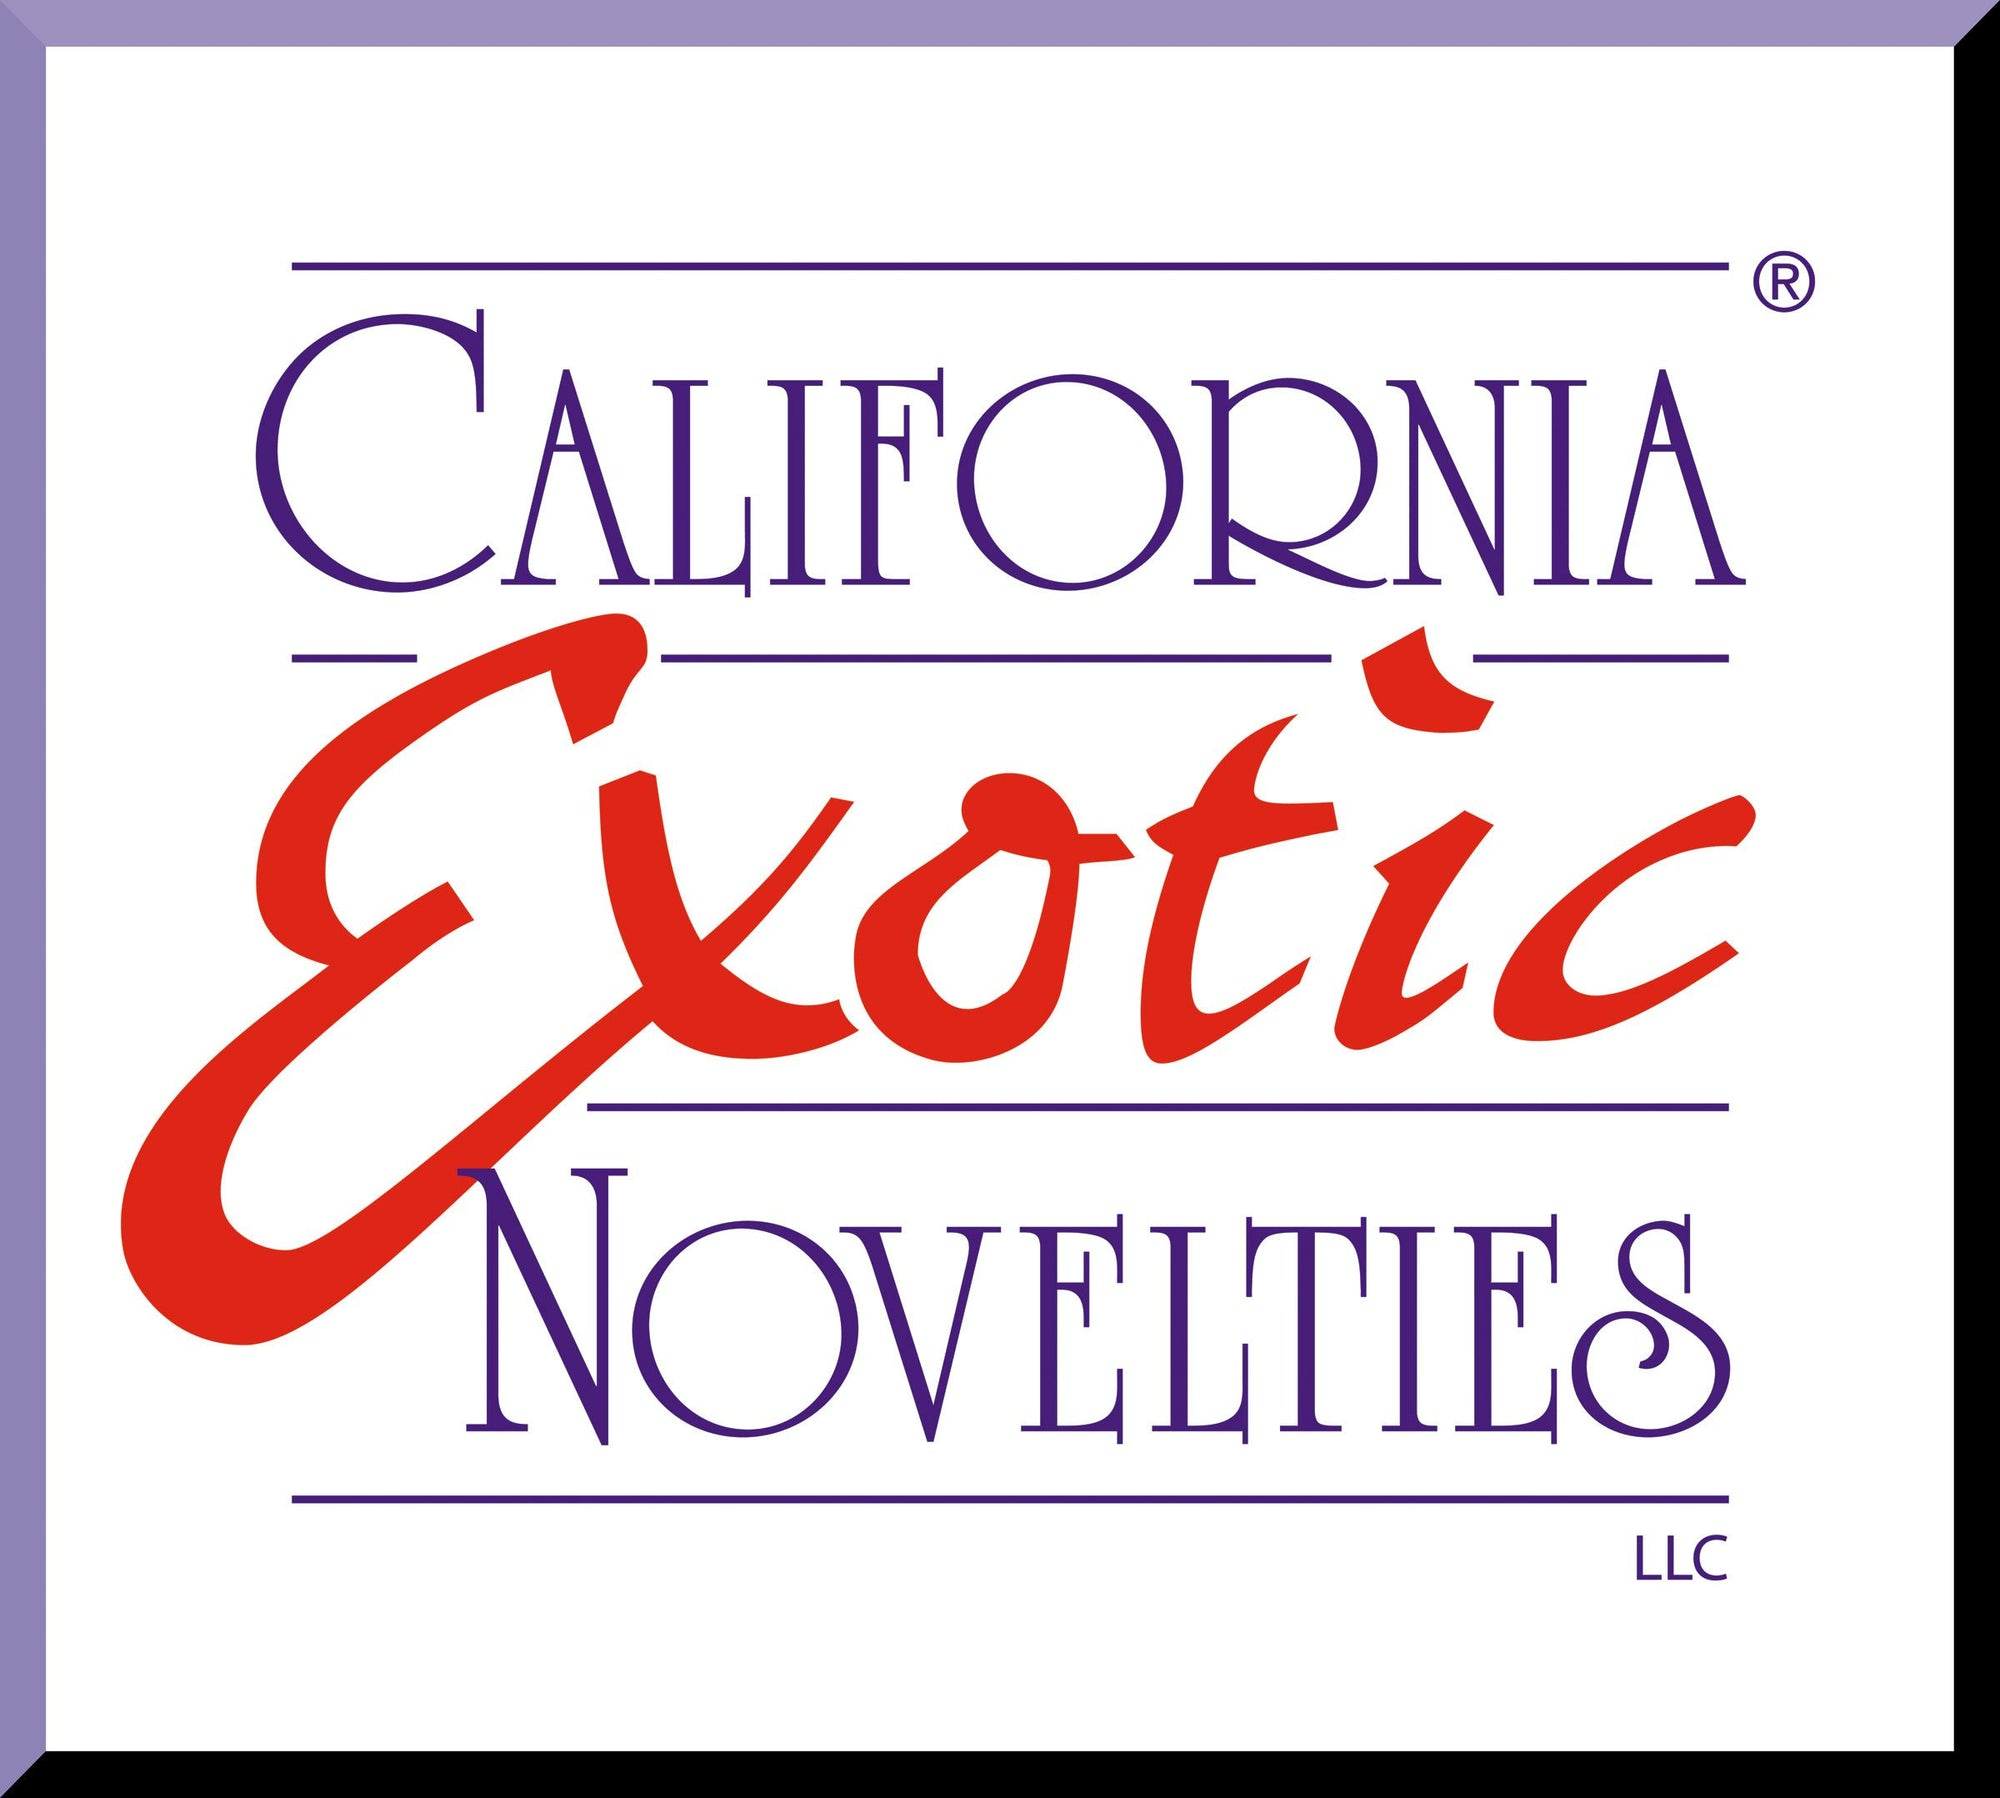 Introducing CalExotics: Leaders in Pleasure